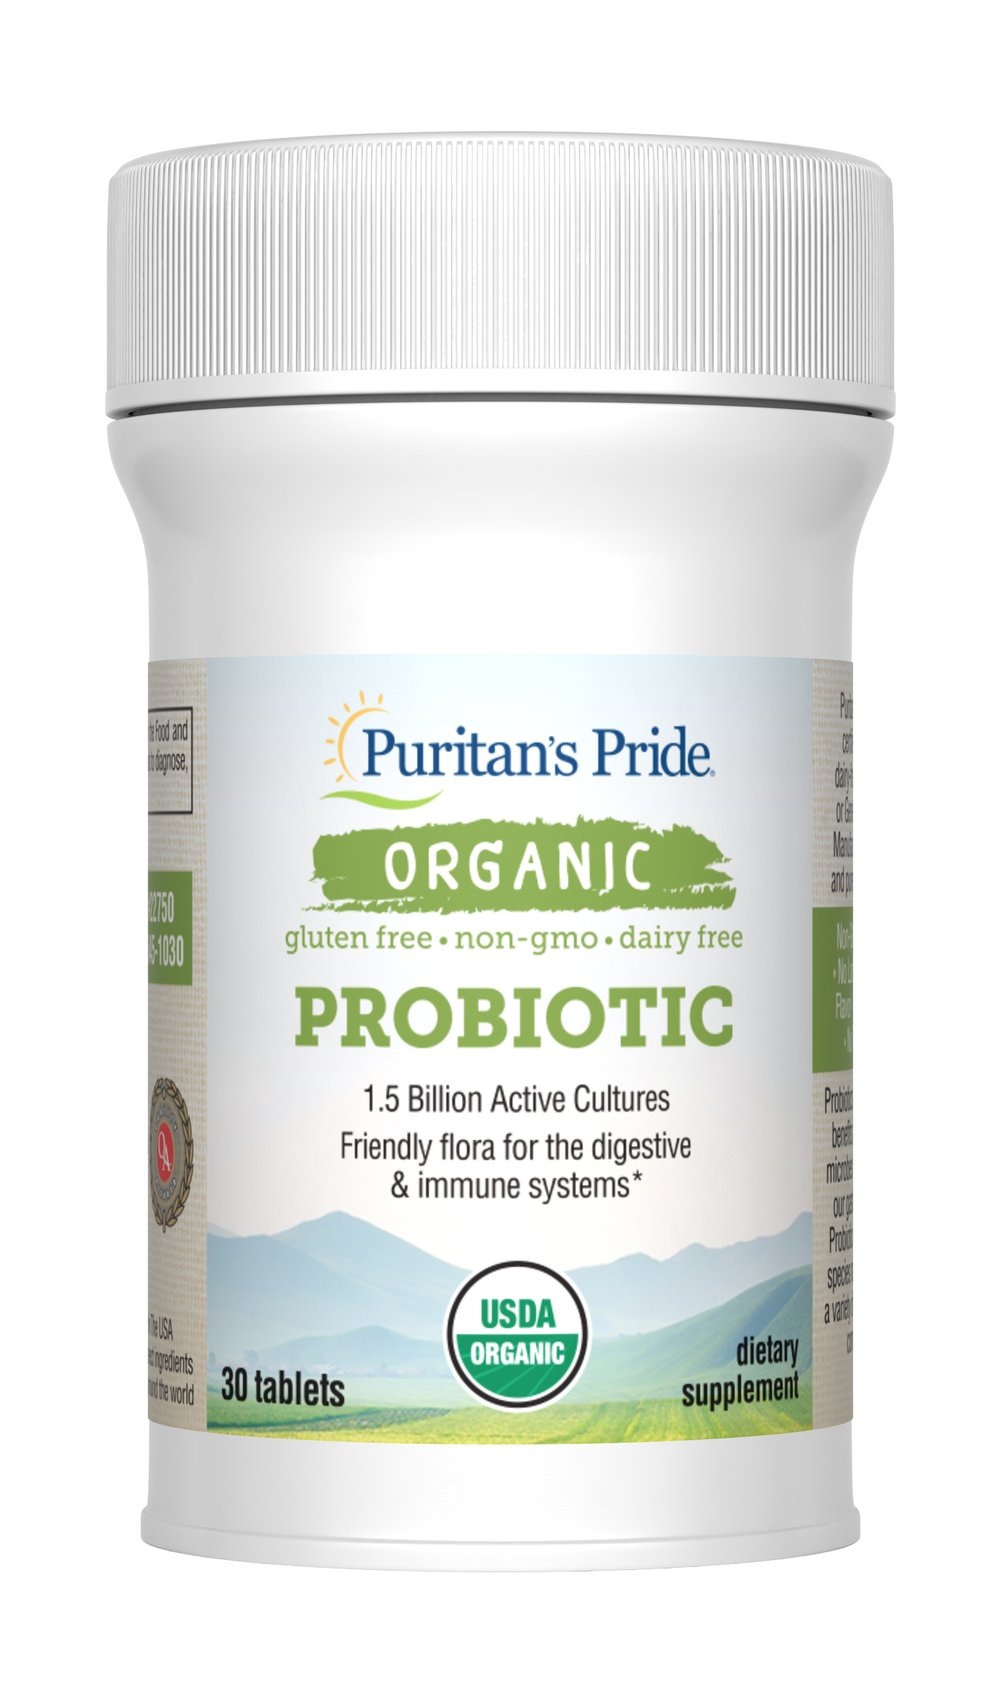 Organic Probiotic Thumbnail Alternate Bottle View